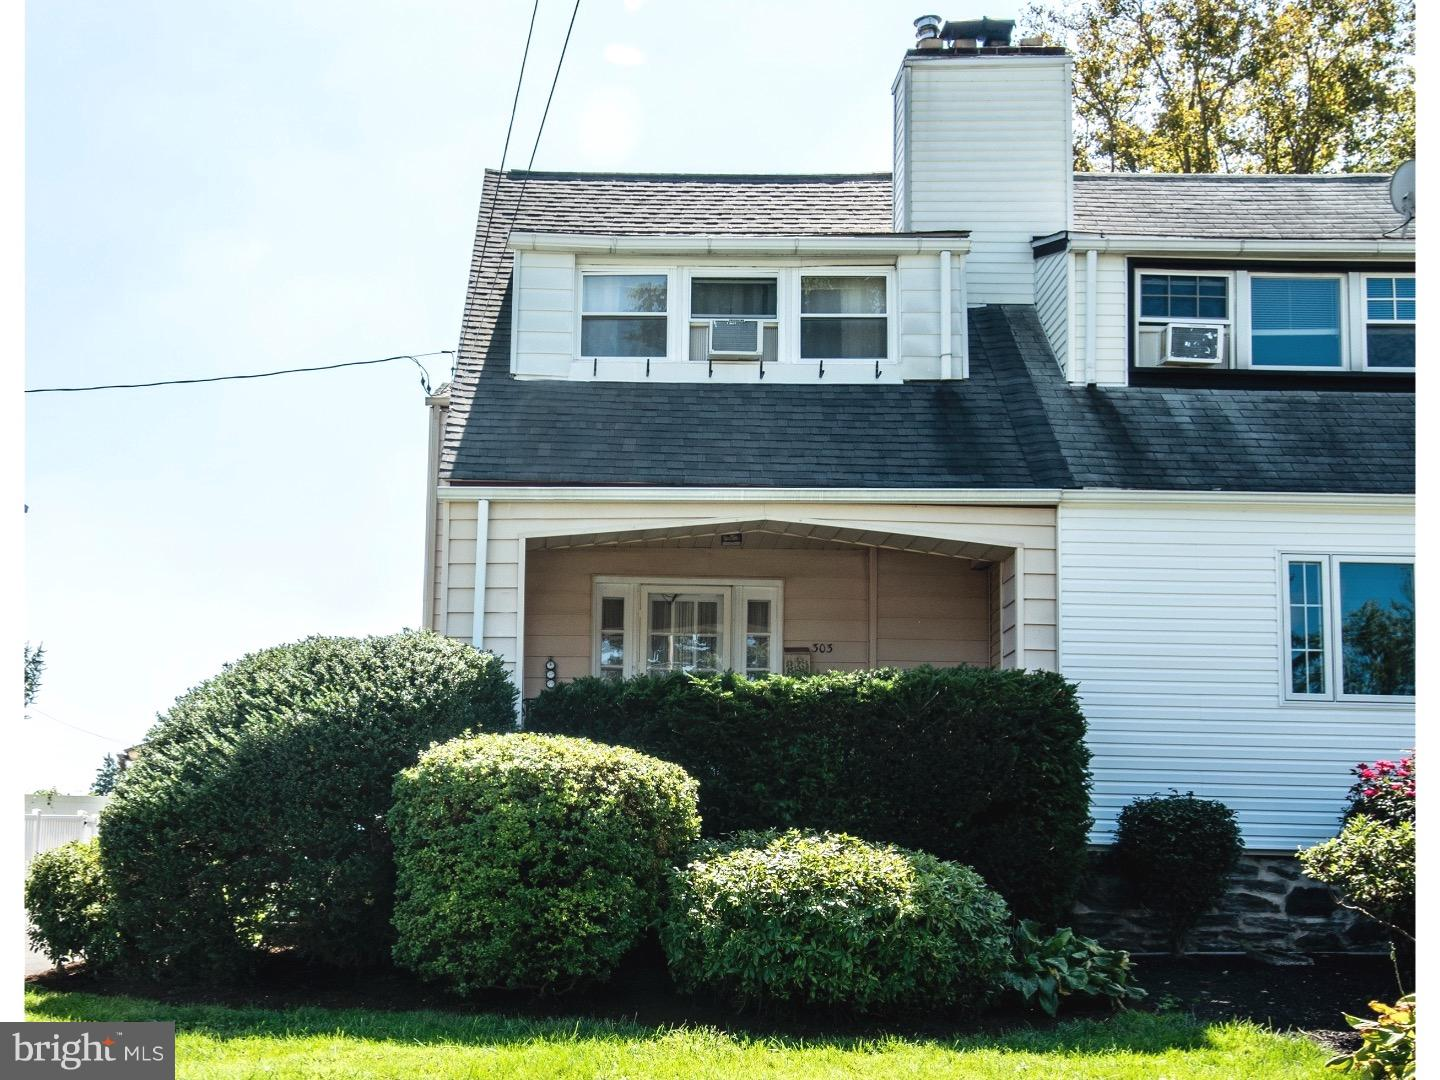 303 Cherry Lane Havertown, PA 19083